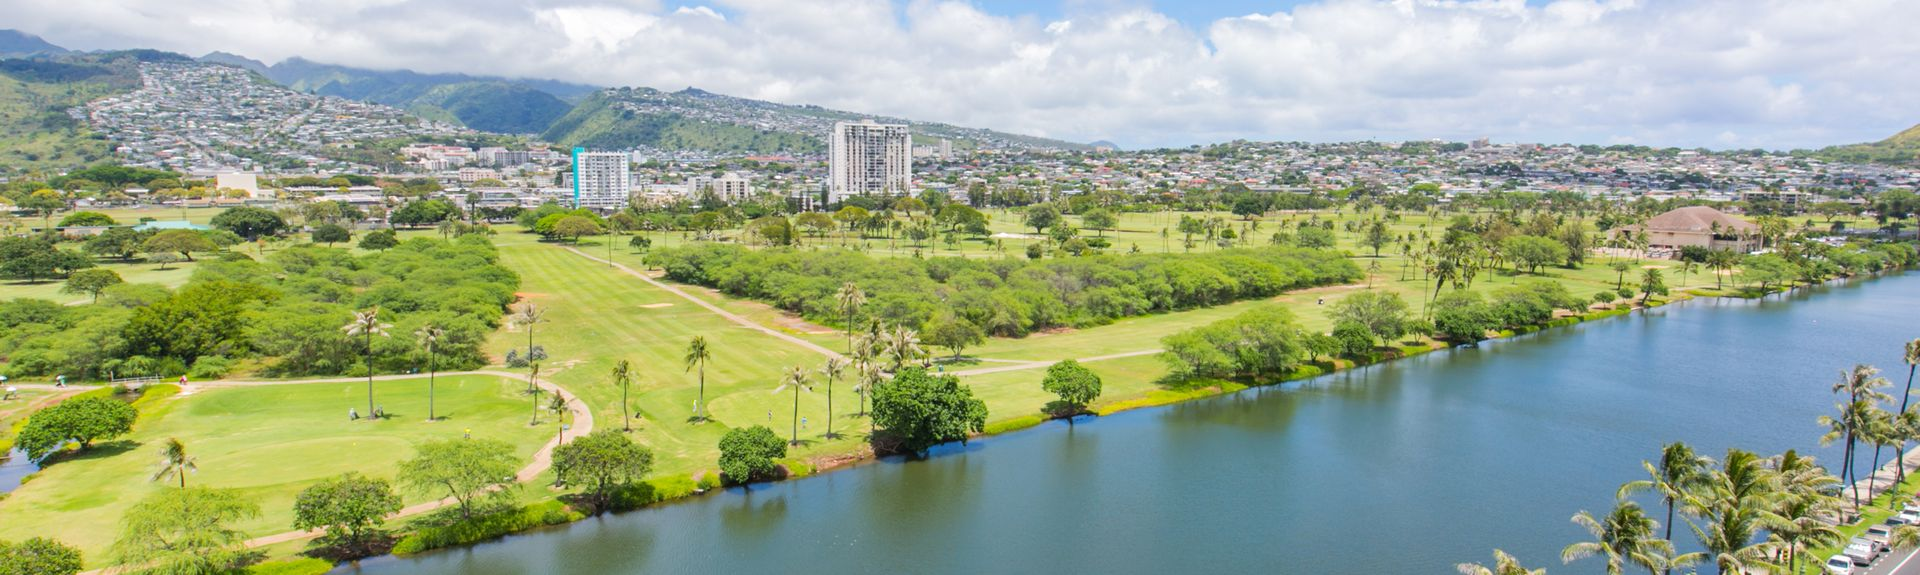 Fairway Villas (Honolulu, Hawaii, United States)